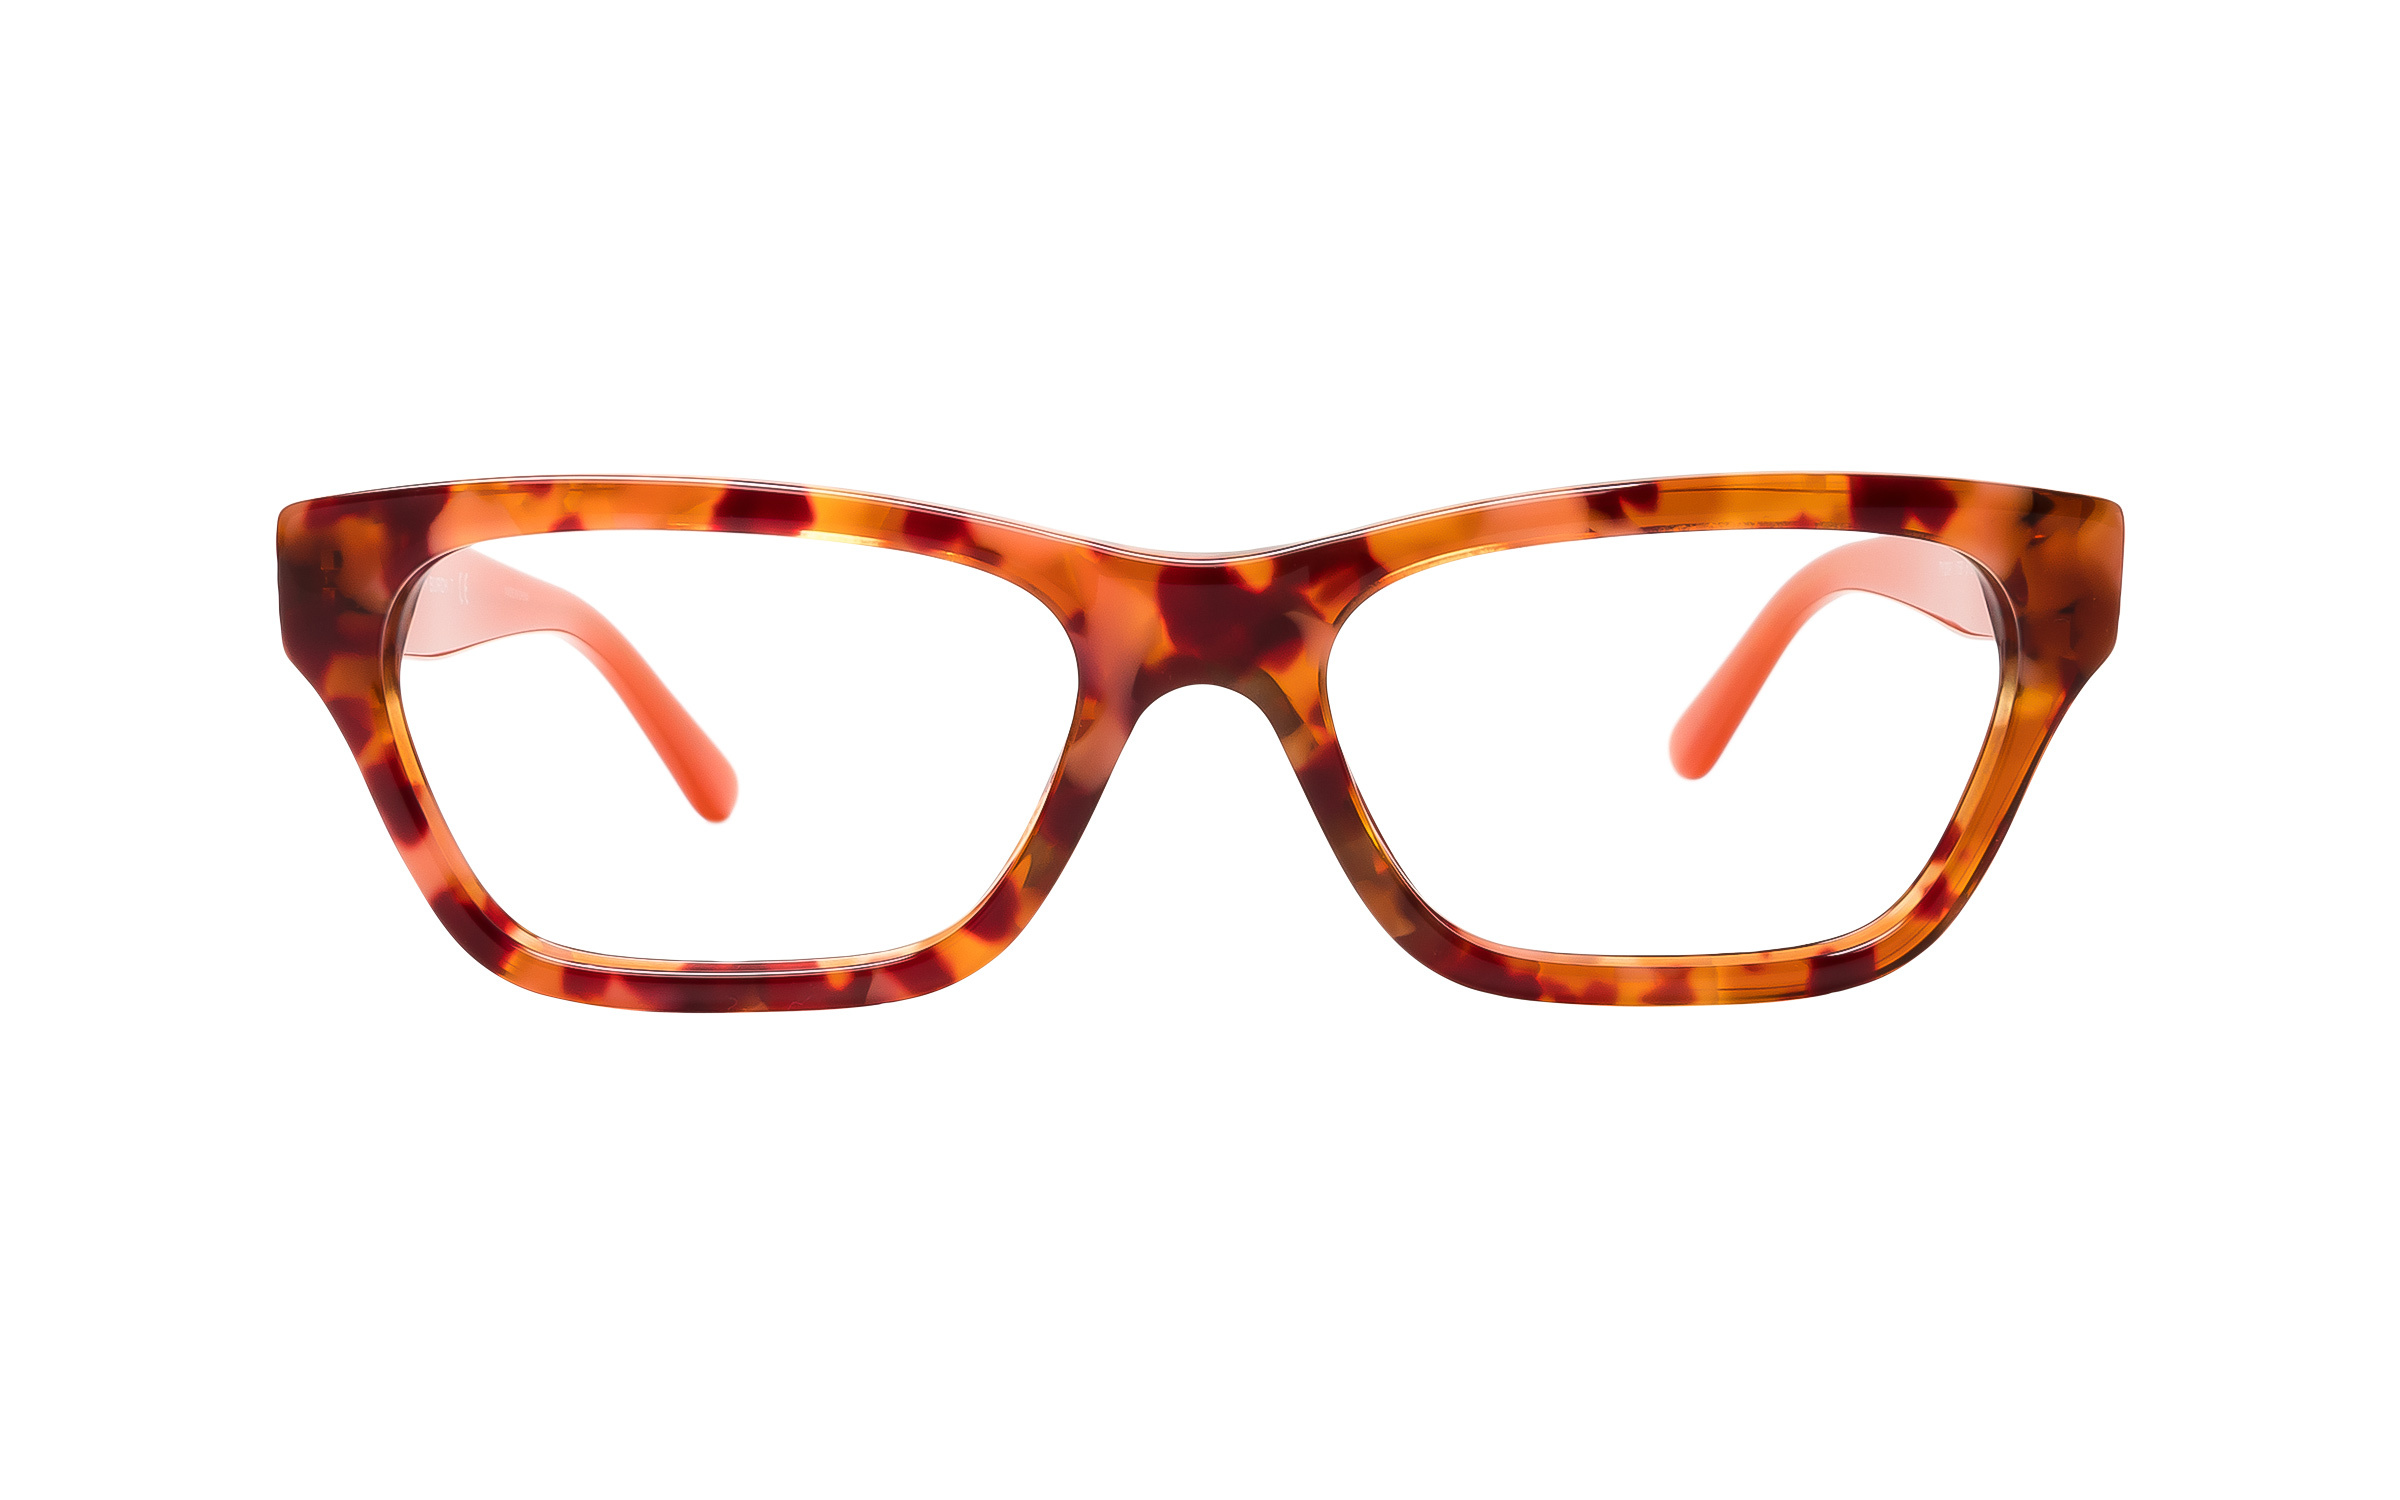 Tory Burch TY2097 1758 (51) Eyeglasses and Frame in Cherry Tortoise/Pink/Red - Online Coastal